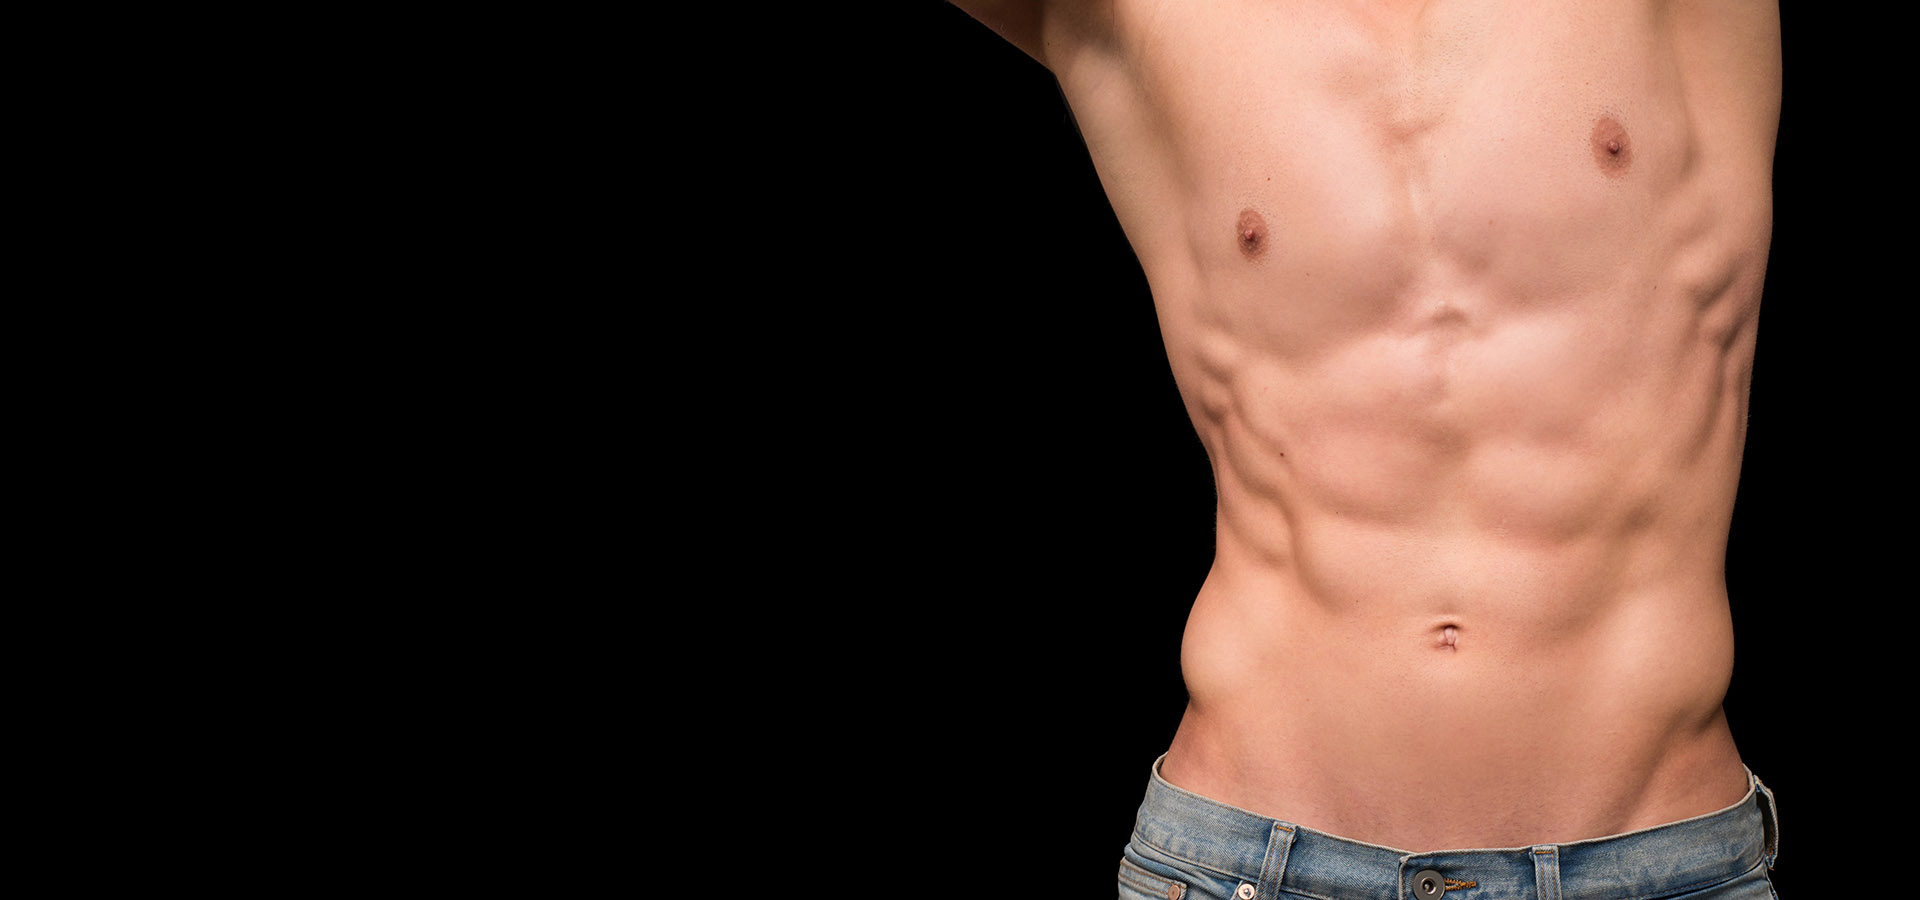 Young mans torso with arms above head showing defined abdominals